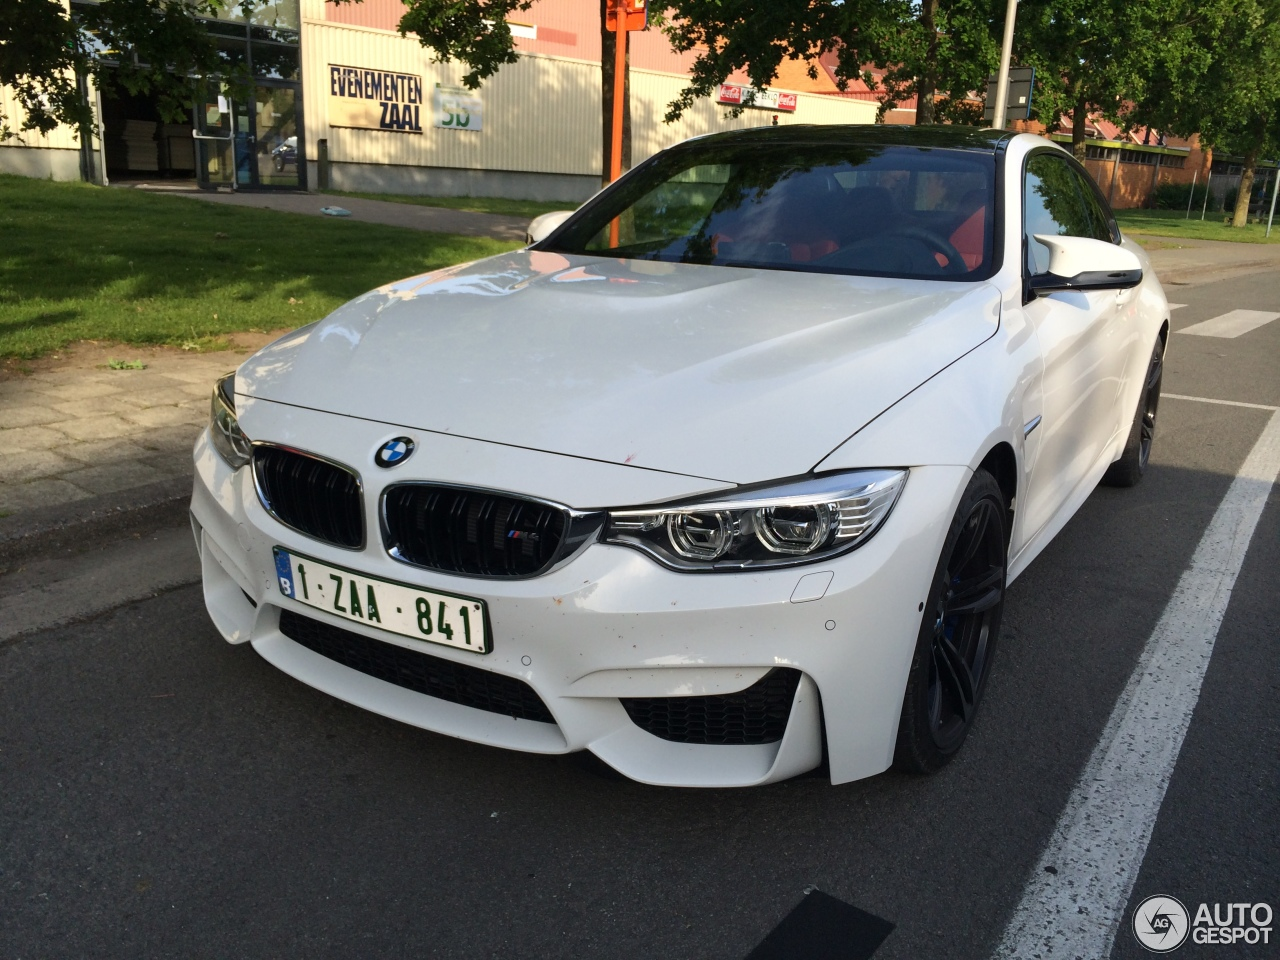 f82 f83 official alpine white m4 coupe convertible. Black Bedroom Furniture Sets. Home Design Ideas